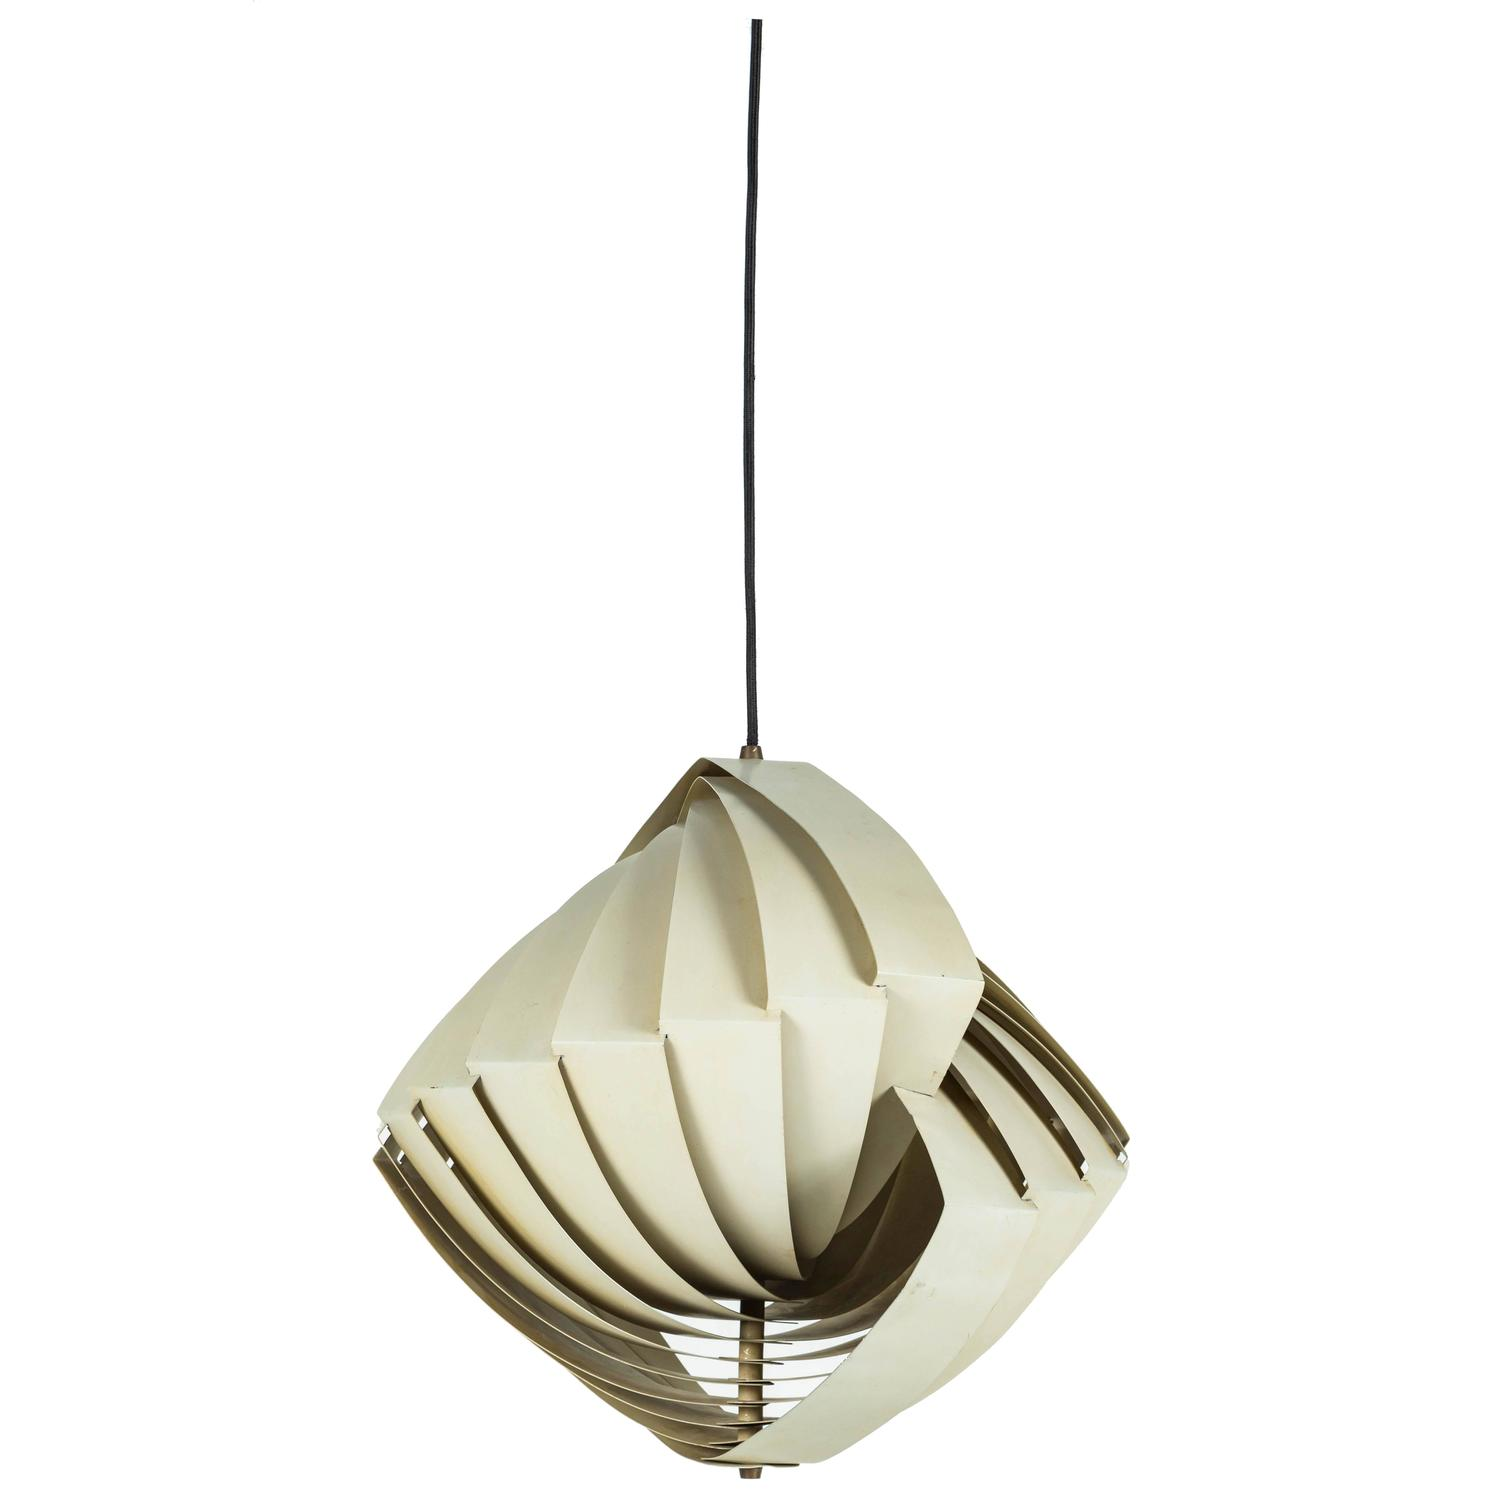 louis weisdorf seashell lamp denmark c 1960 for sale at